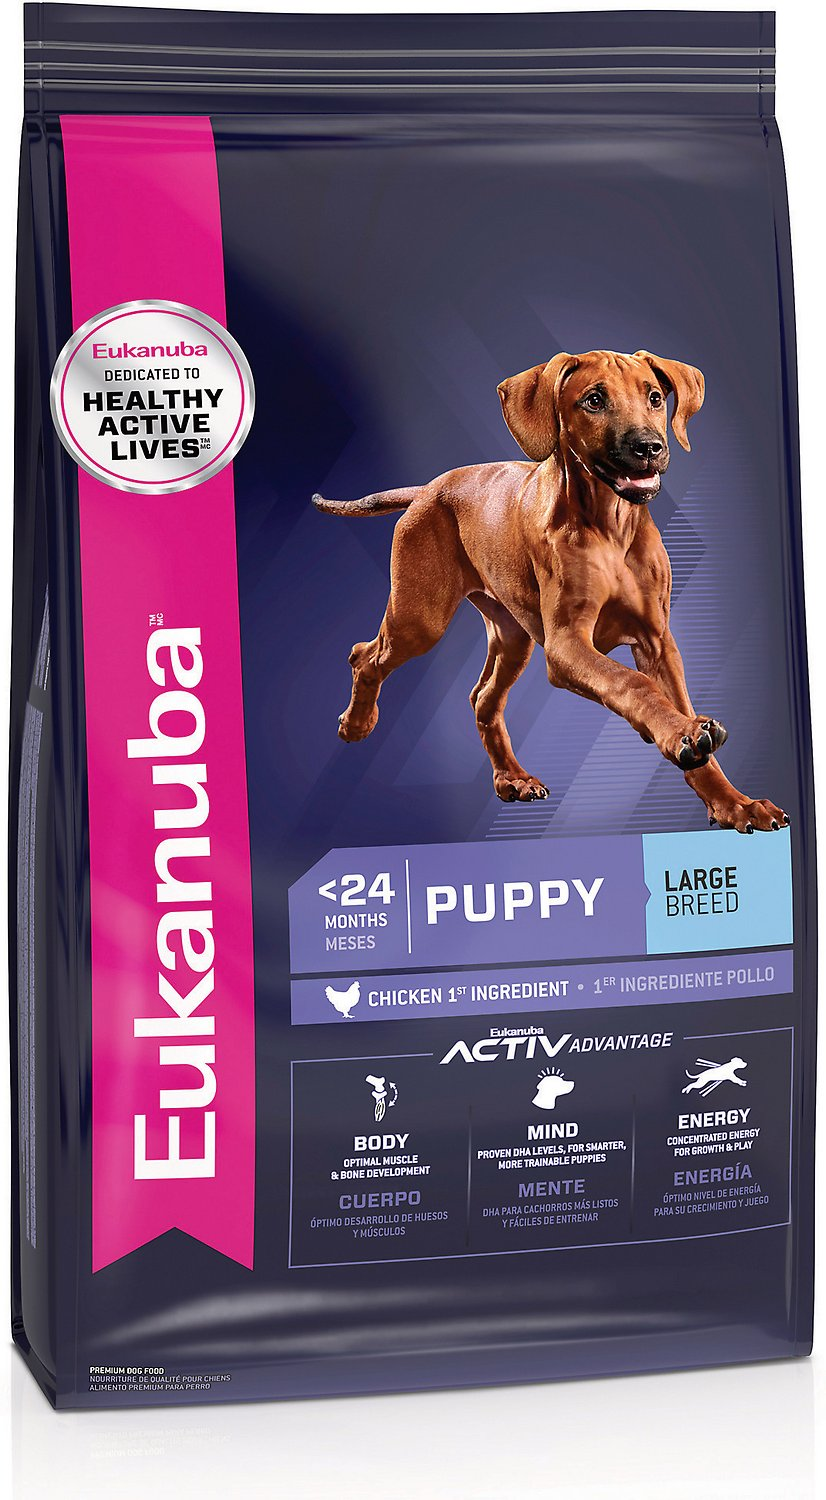 Eukanuba Puppy Food >> Eukanuba Large Breed Puppy Dry Dog Food, 33-lb bag - Chewy.com